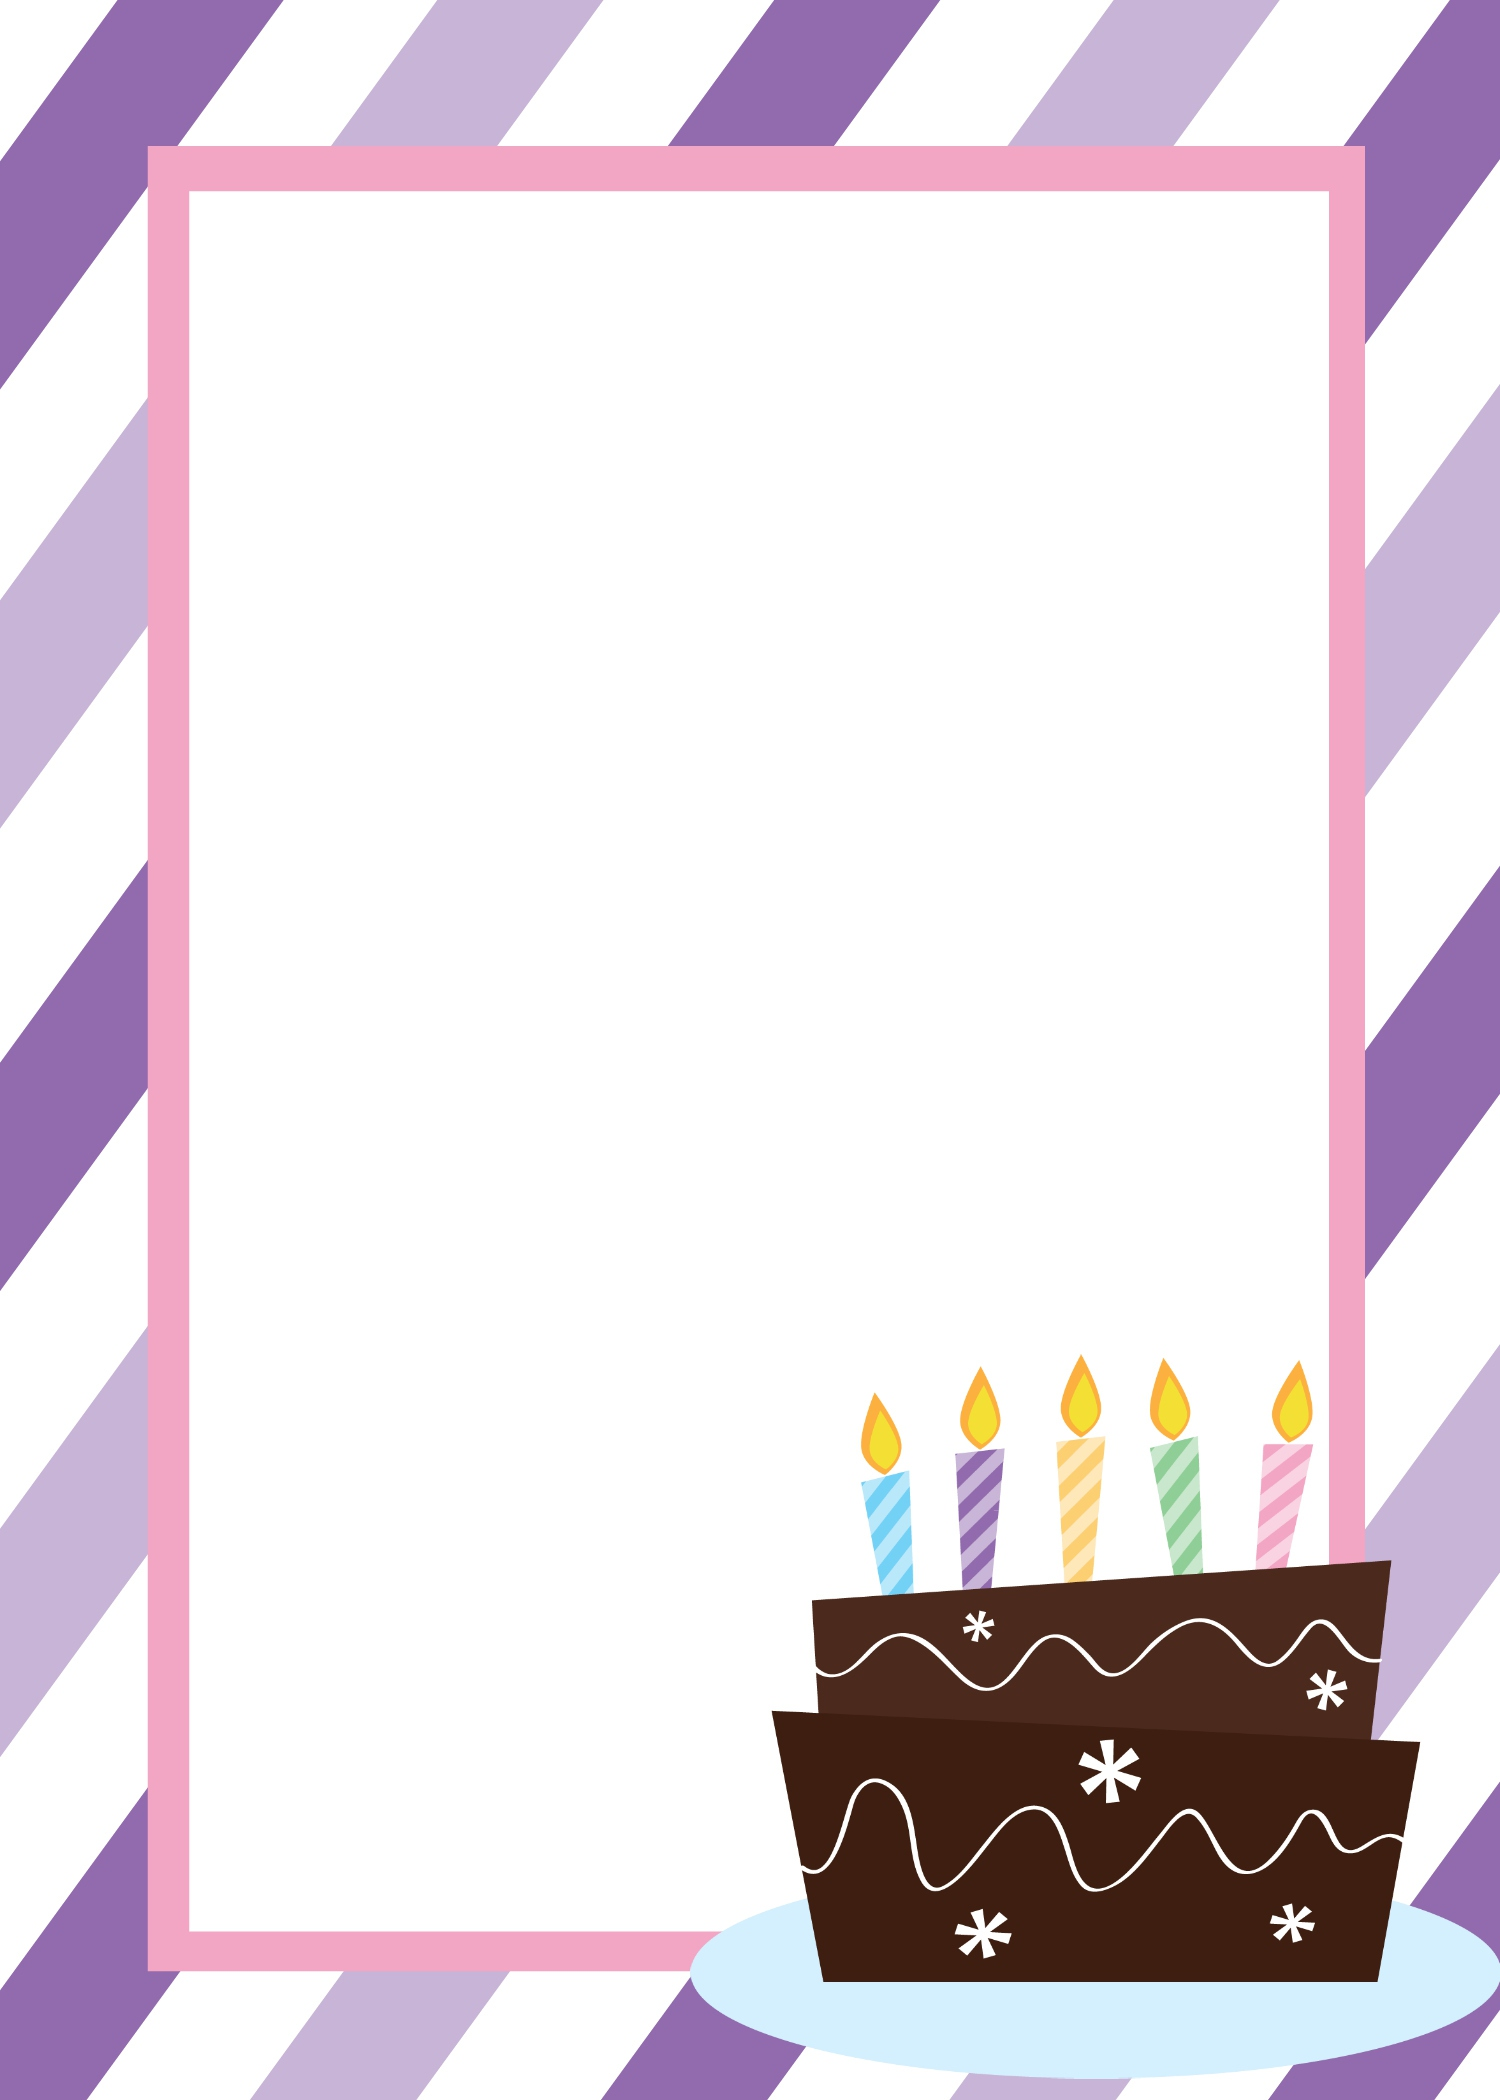 8th birthday invitation templates ; blank-birthday-invitations-templates-ideas